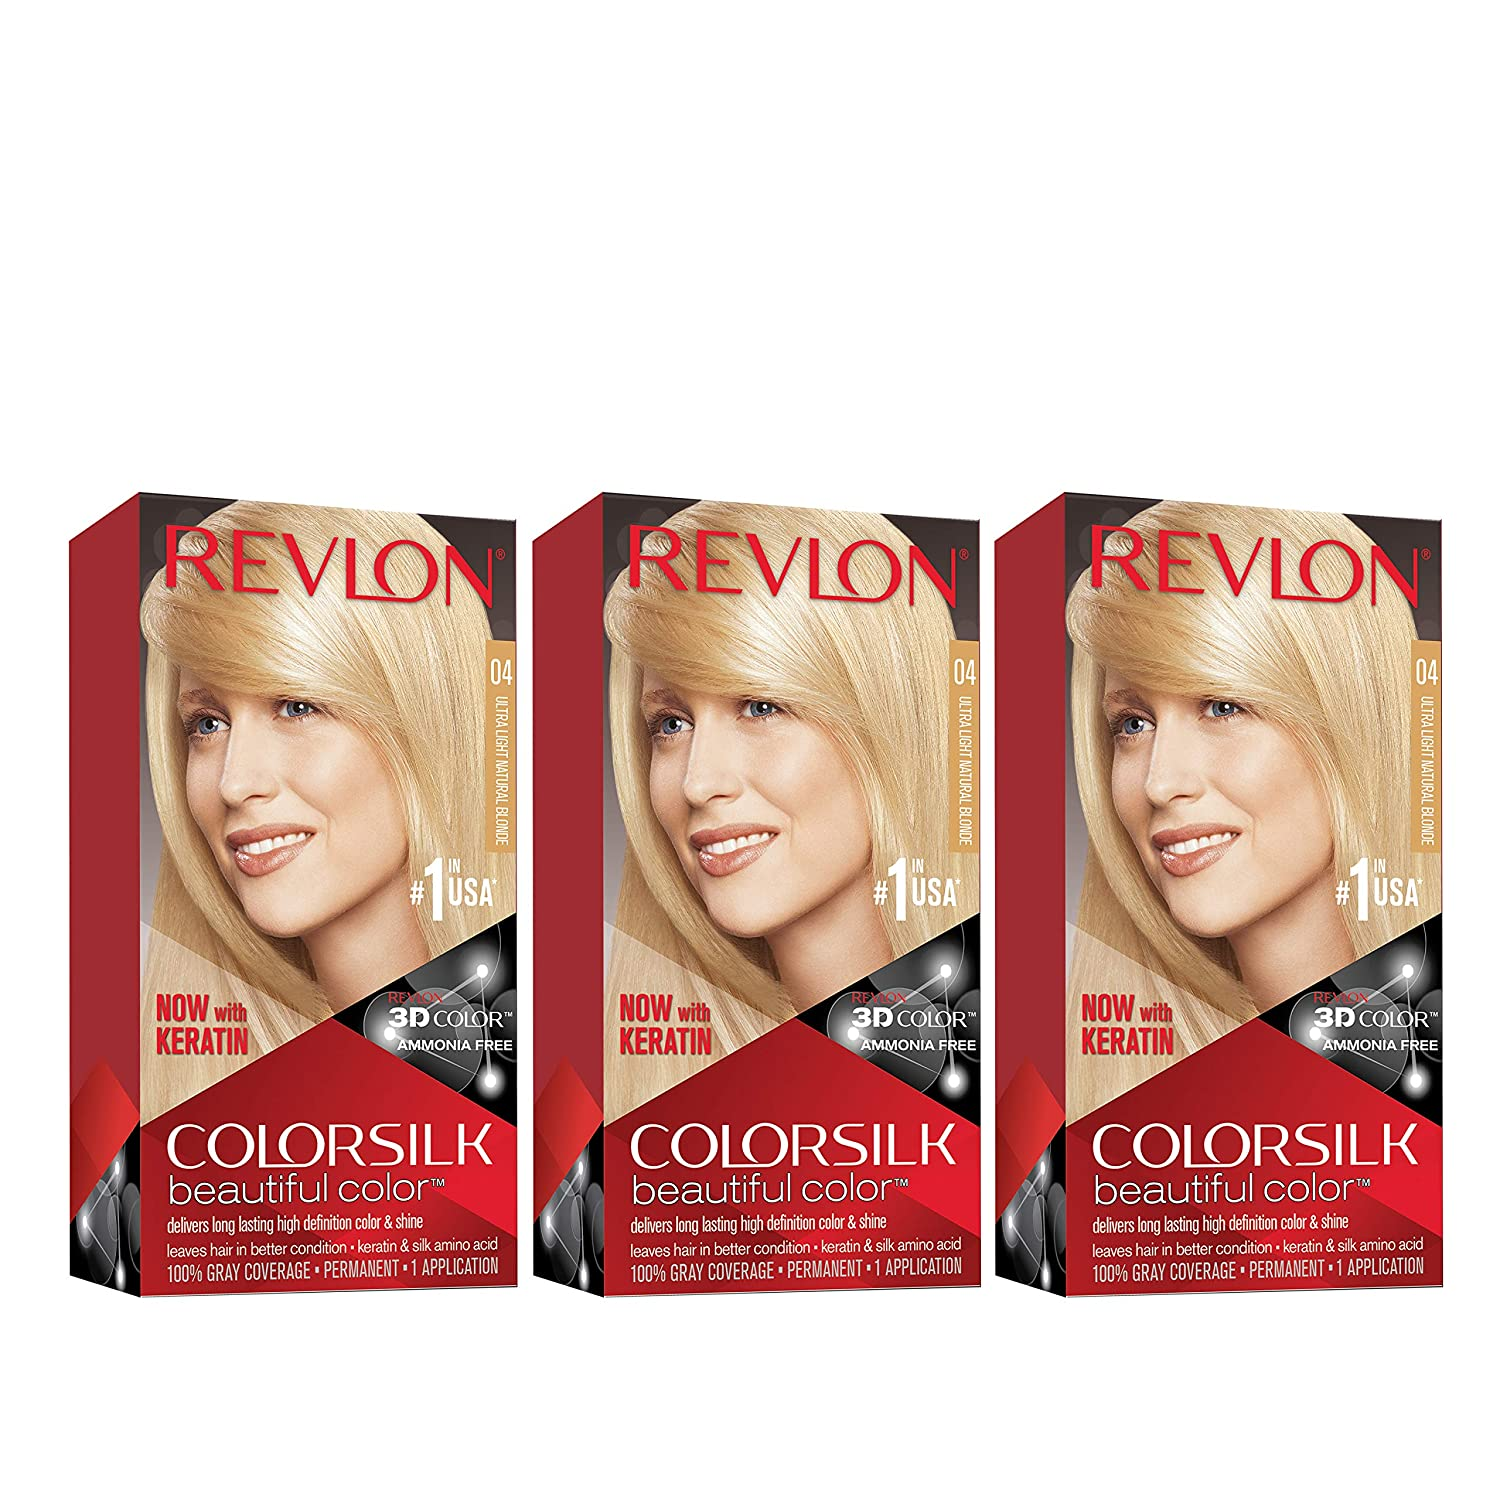 Revlon Colorsilk Beautiful Color, Permanent Hair Dye with Keratin, 100% Gray Coverage, Ammonia Free, 04Ultra Light Natural Blonde (Pack of 3)